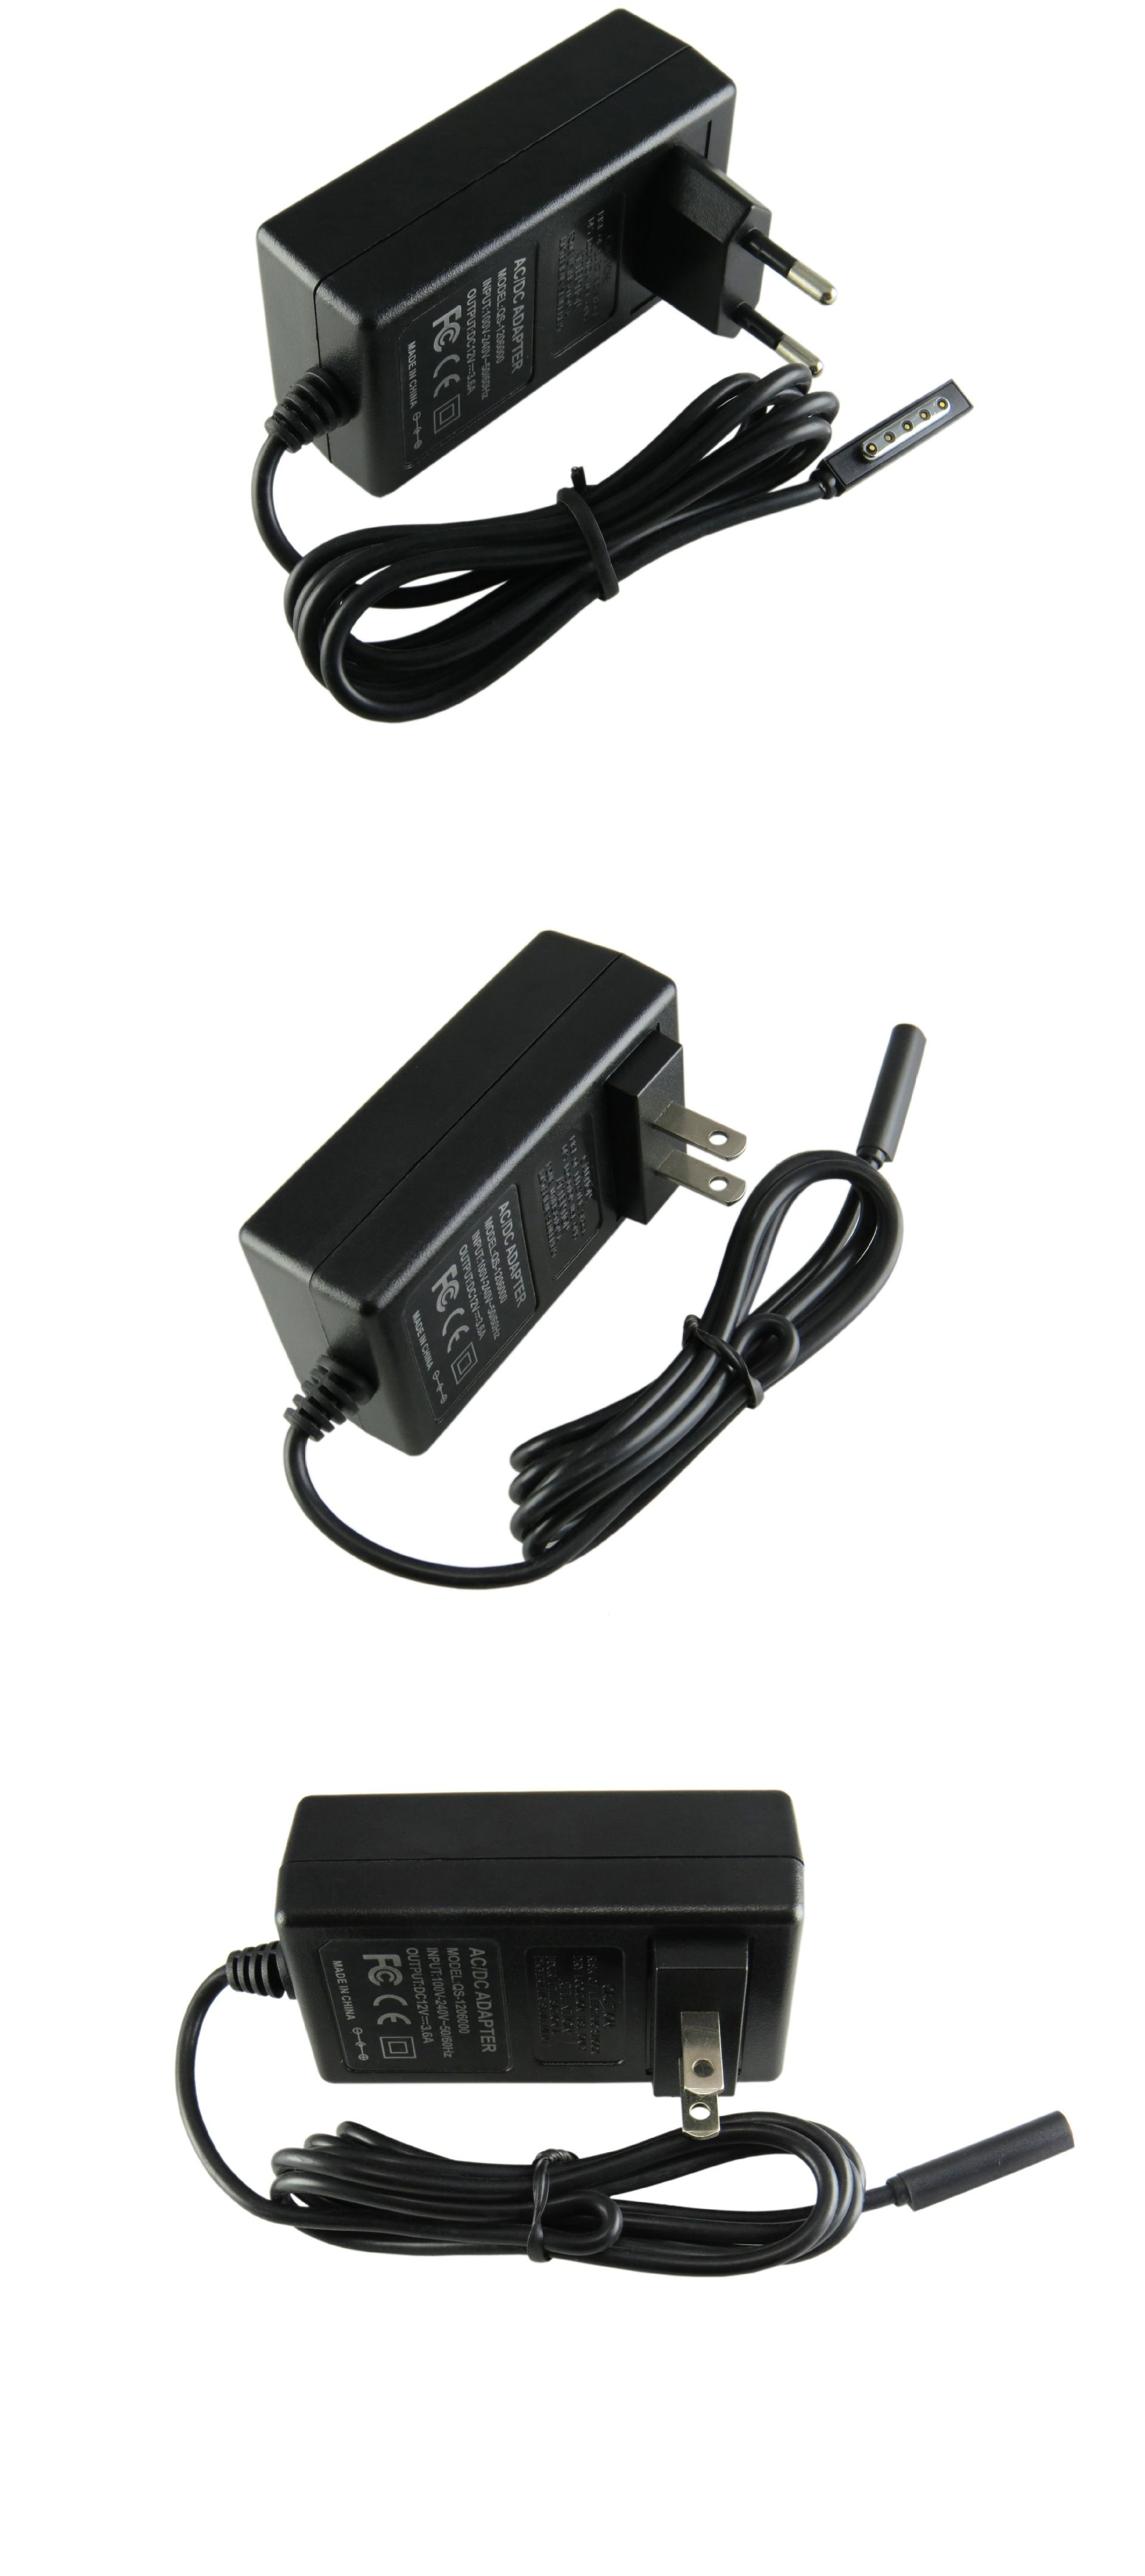 12v 36a Power Adapter Charger For Microsoft Surface Pro 2 Rt Laptop Compaq 510 Tablet Factory Direct